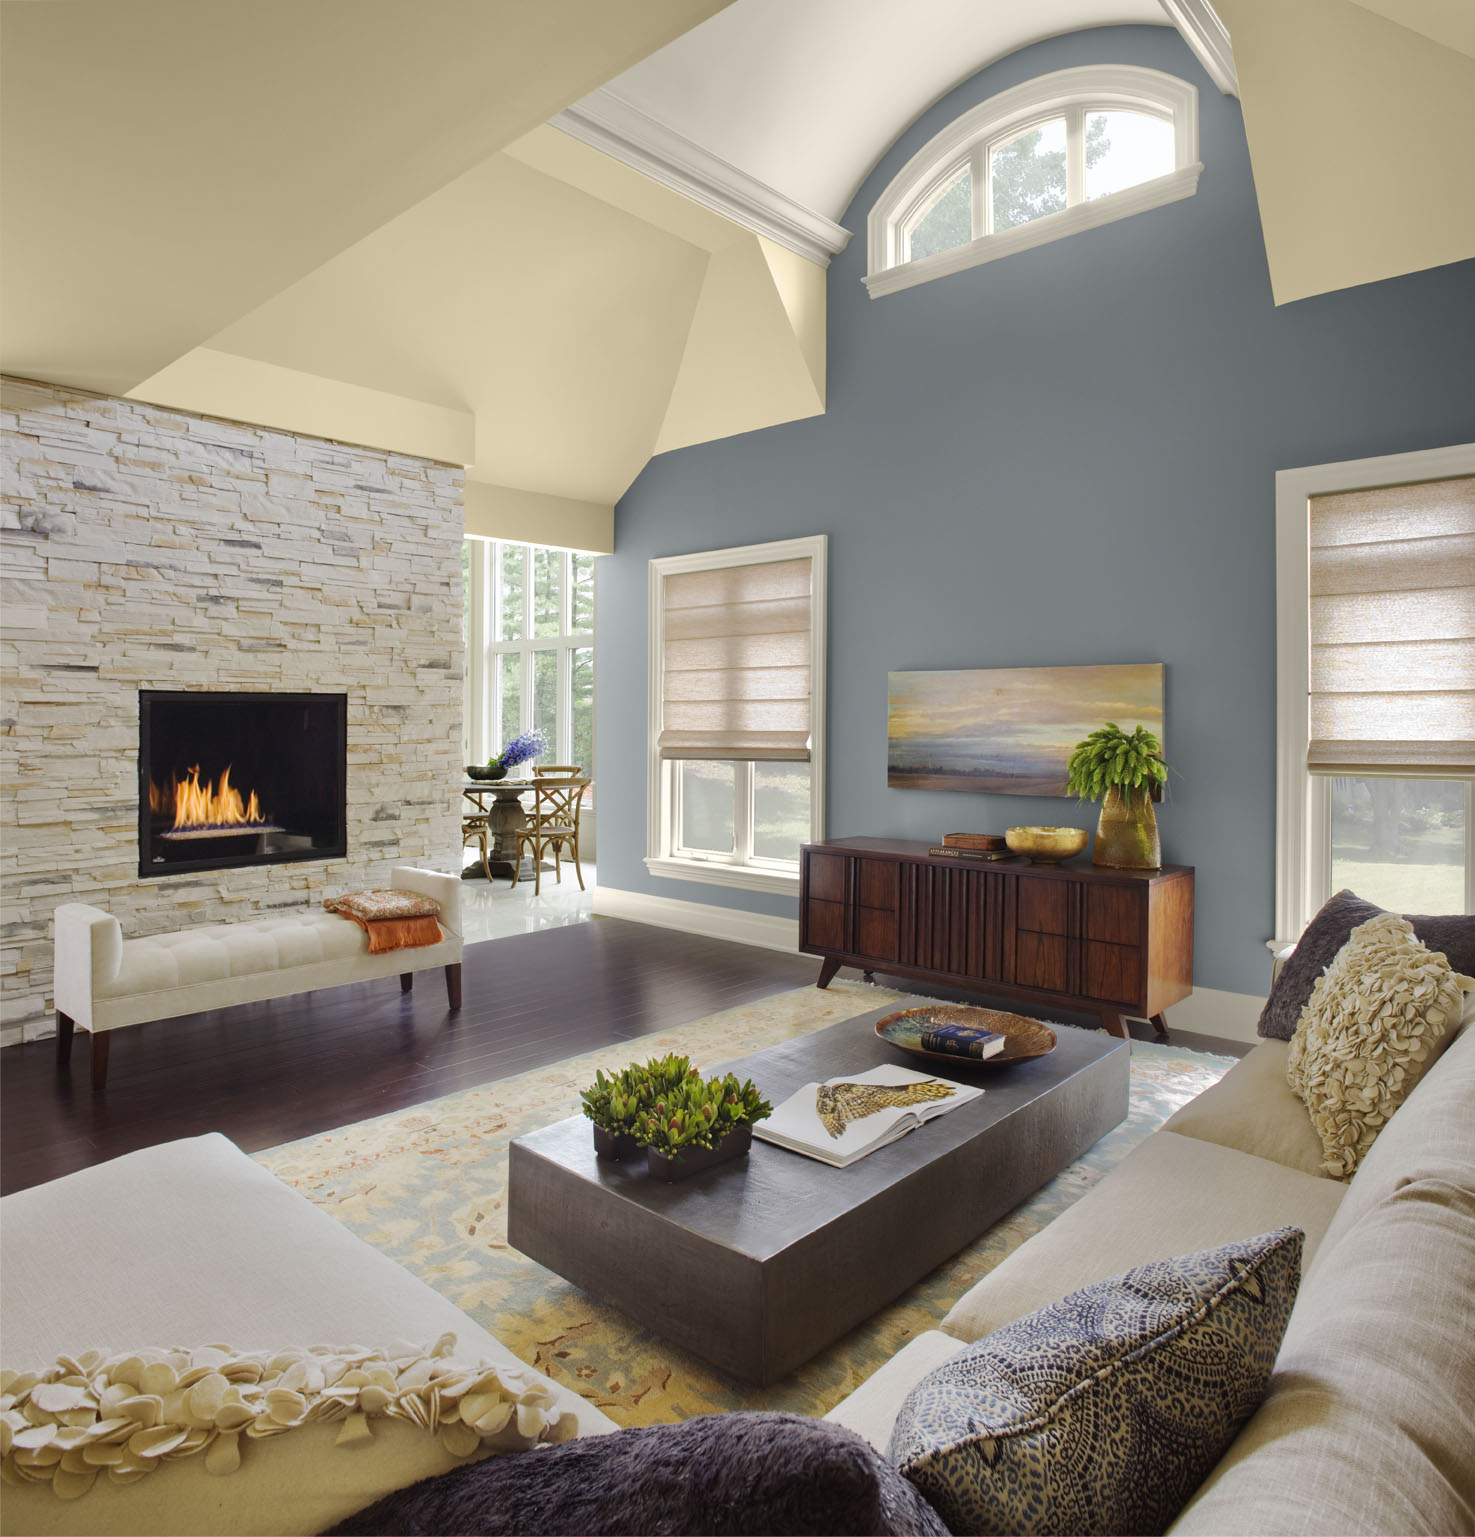 Vaulted living room ideas homesfeed What color to paint living room walls